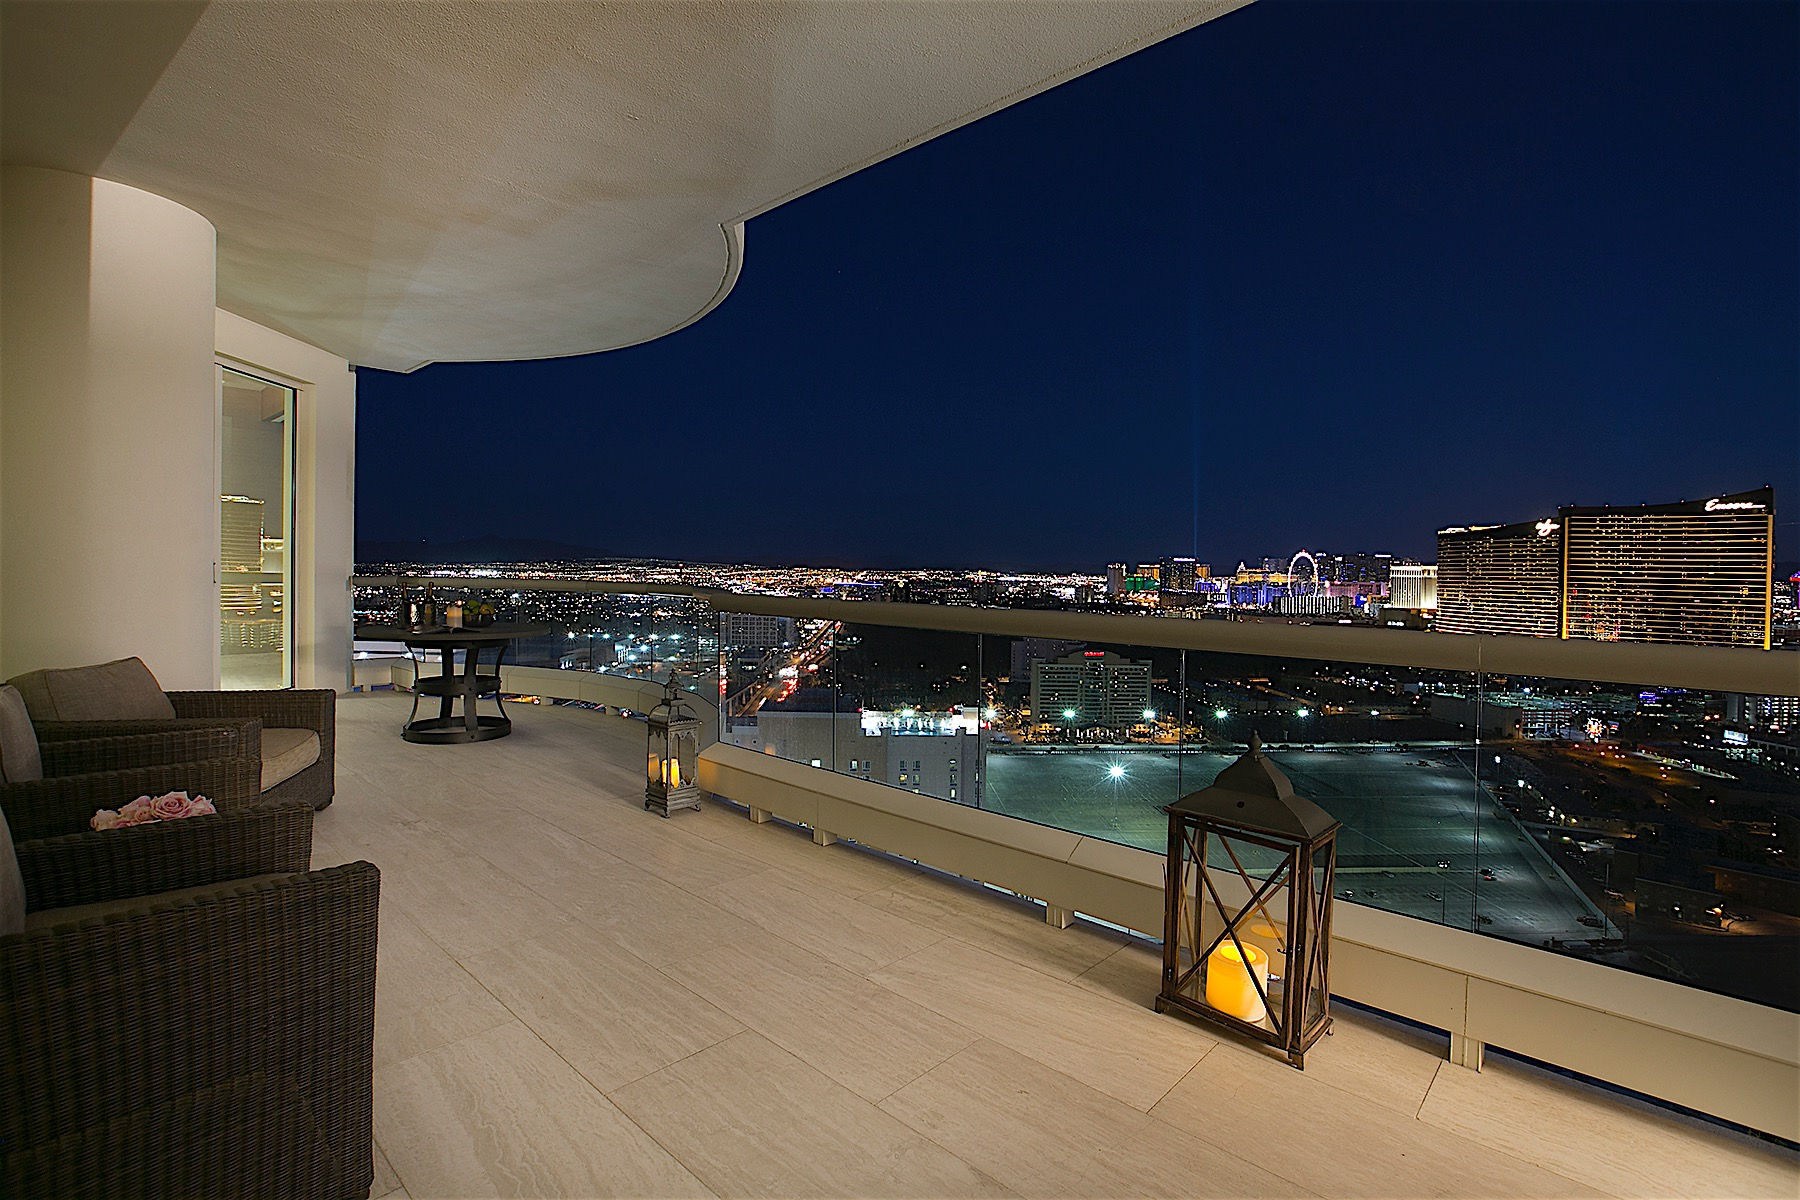 Кондоминиум для того Продажа на The Tiffany Penthouse at Turnberry Place in Las Vegas 2857 Paradise Road #3301 Las Vegas, Невада, 89109 Соединенные Штаты